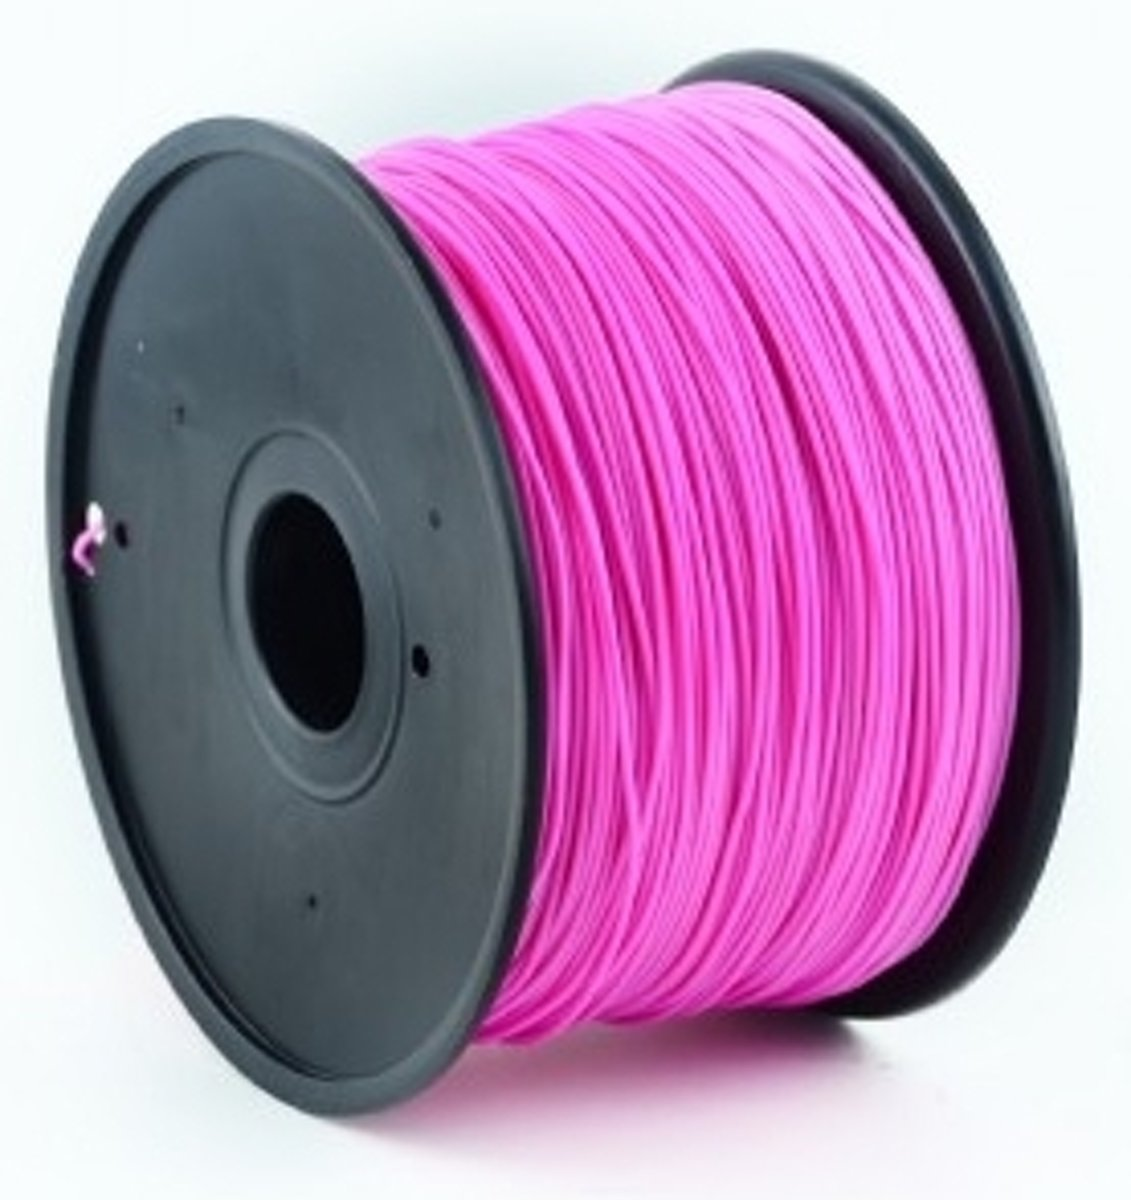 Gembird3 3DP-HIPS3-01-MG - Filament HIPS, 3 mm, magenta